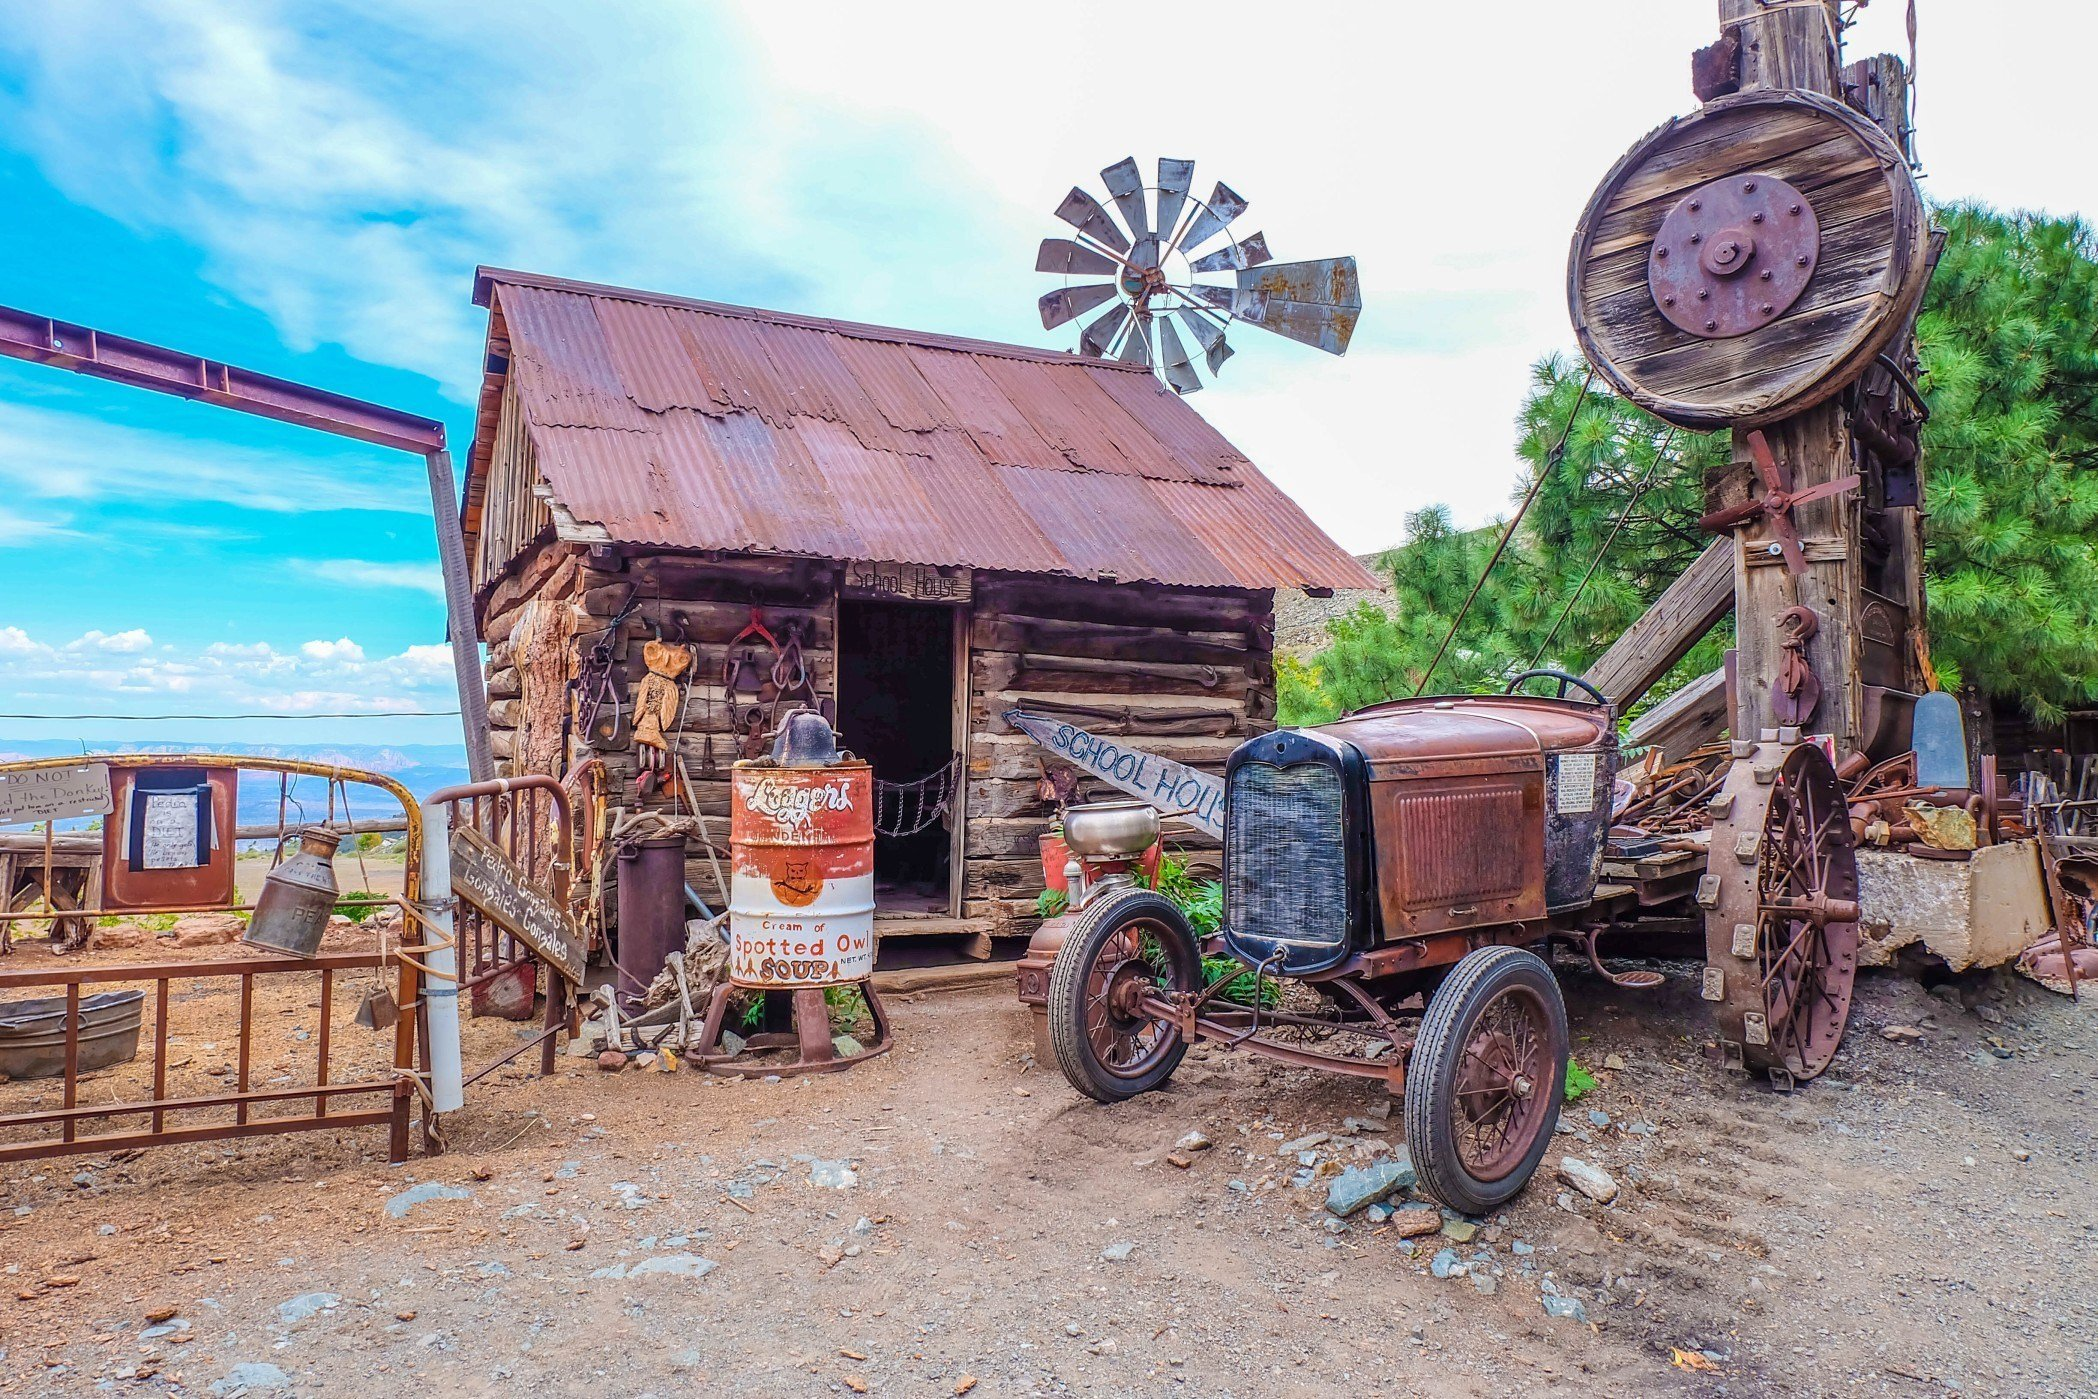 How to Spend a Day in Jerome, Arizona